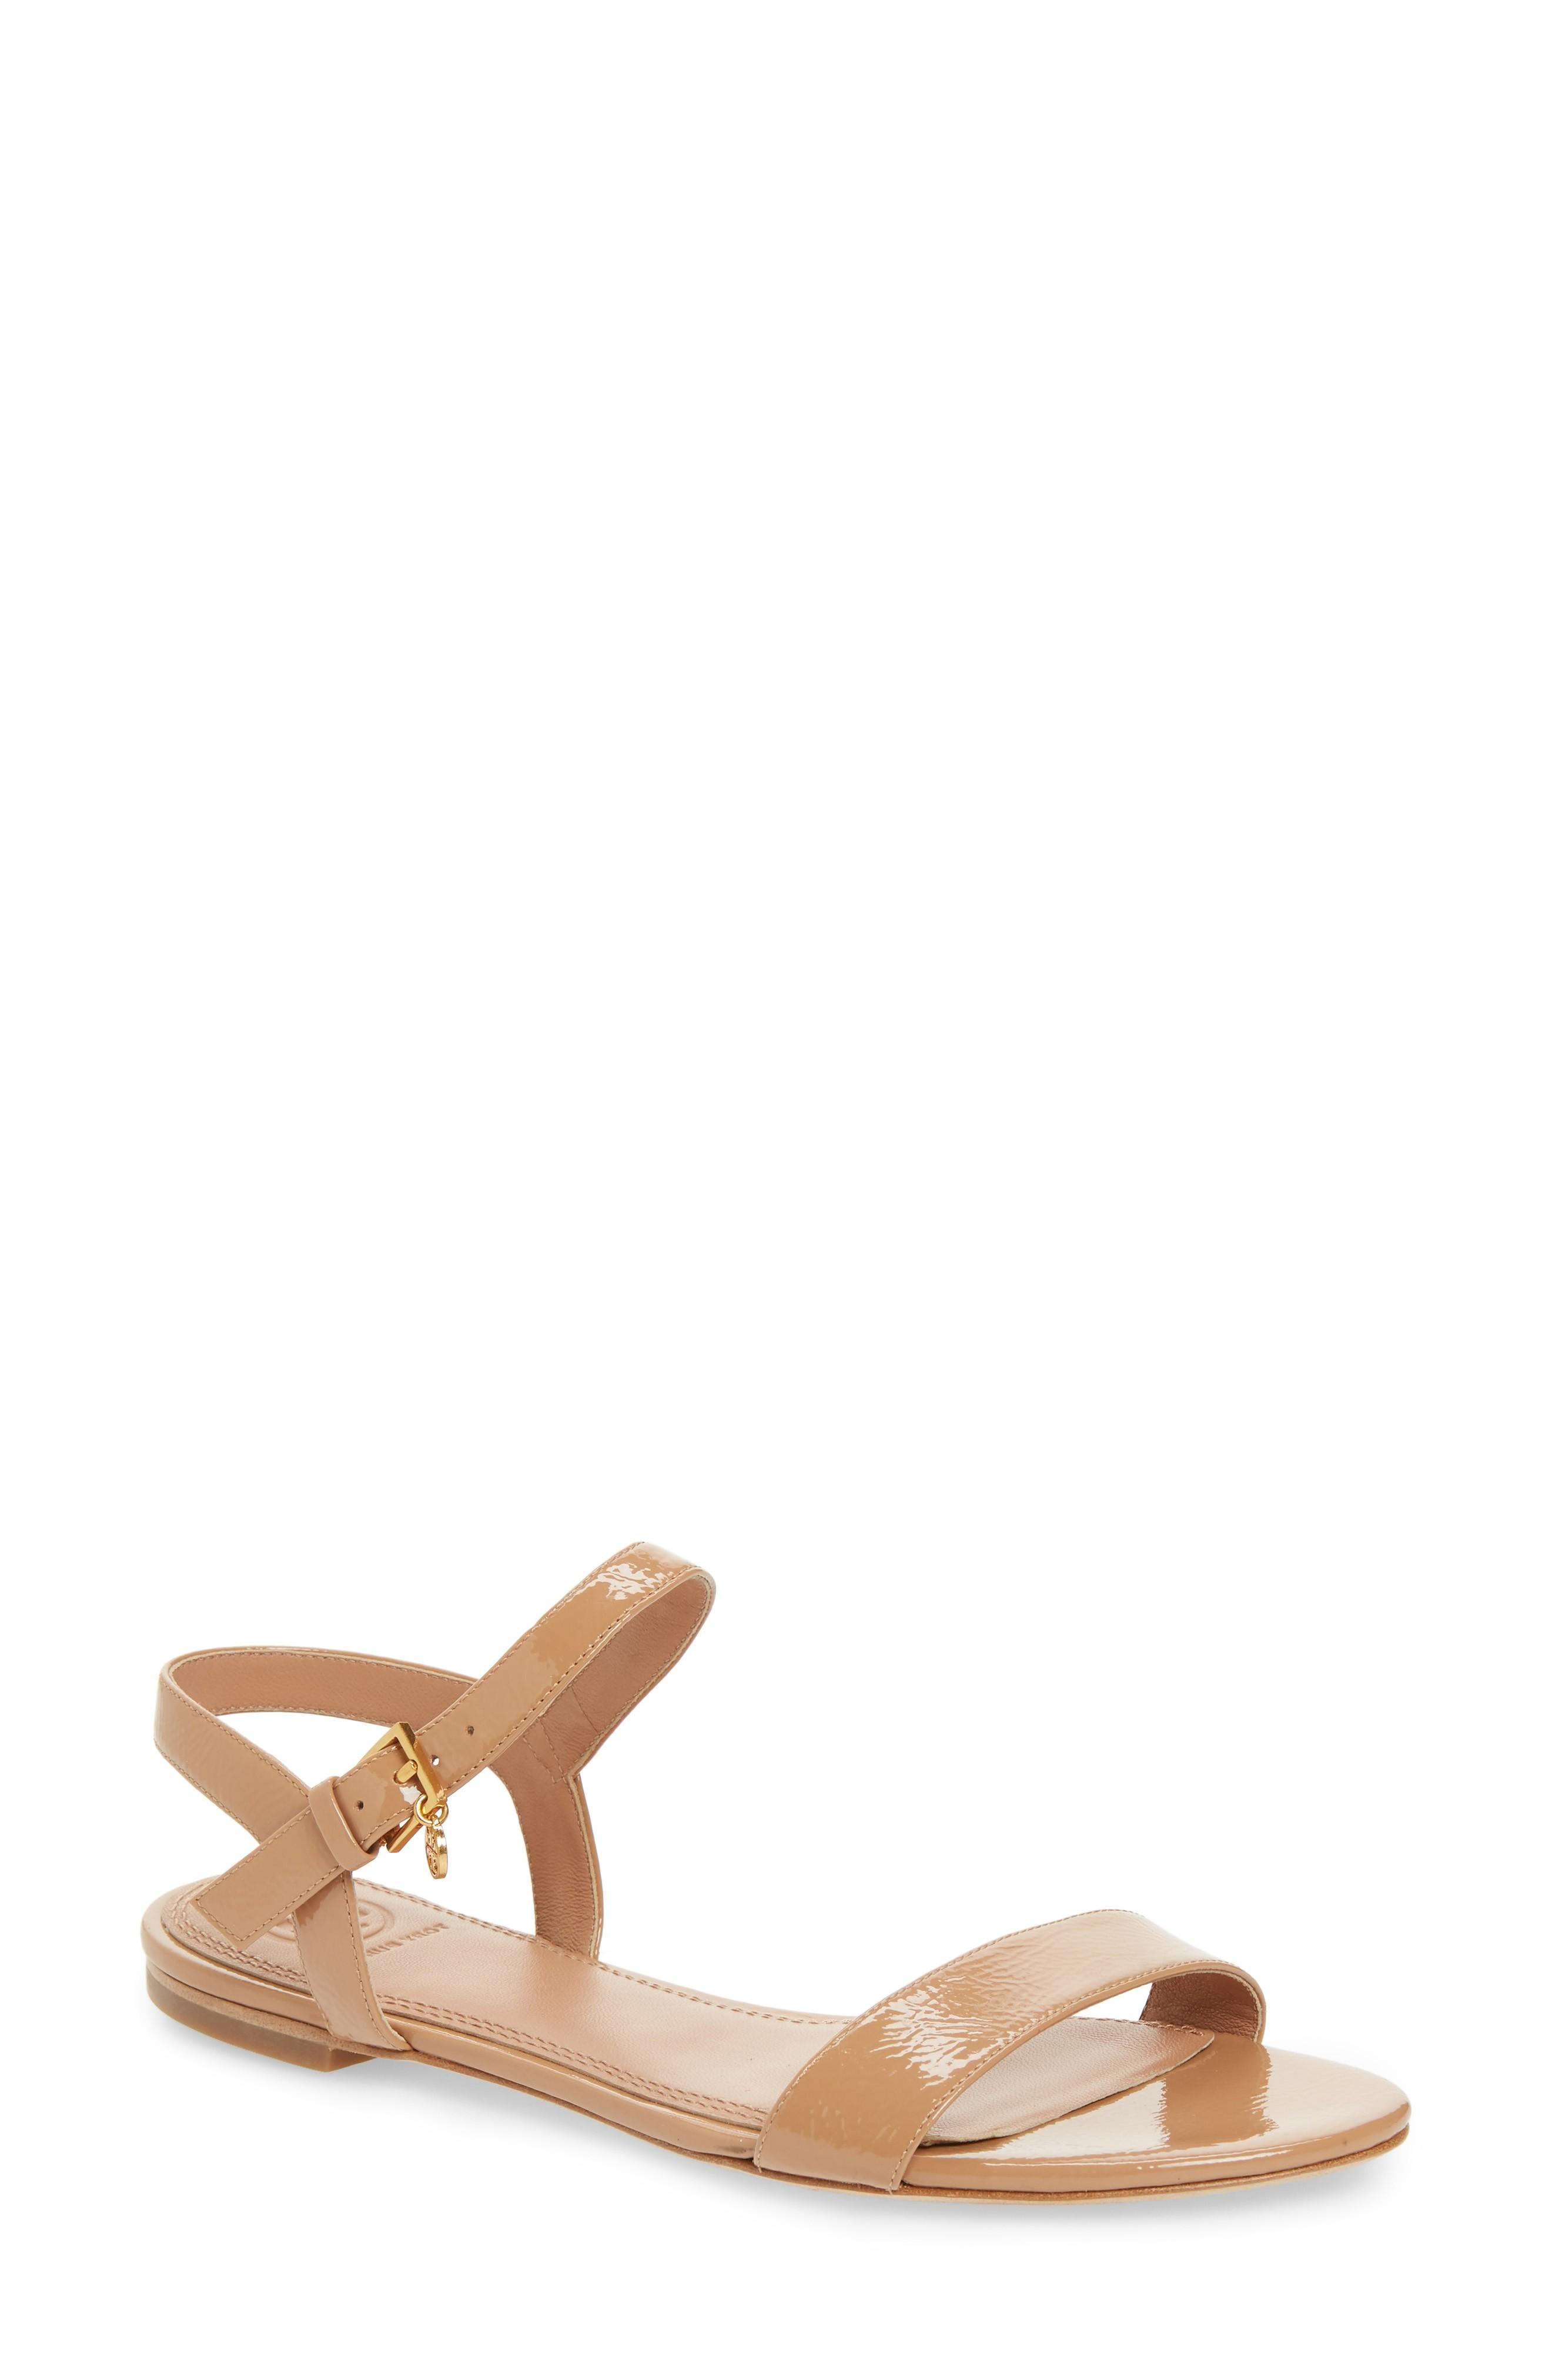 a7129f6f3eec Tory Burch Laurel Strappy Sandal In Makeup